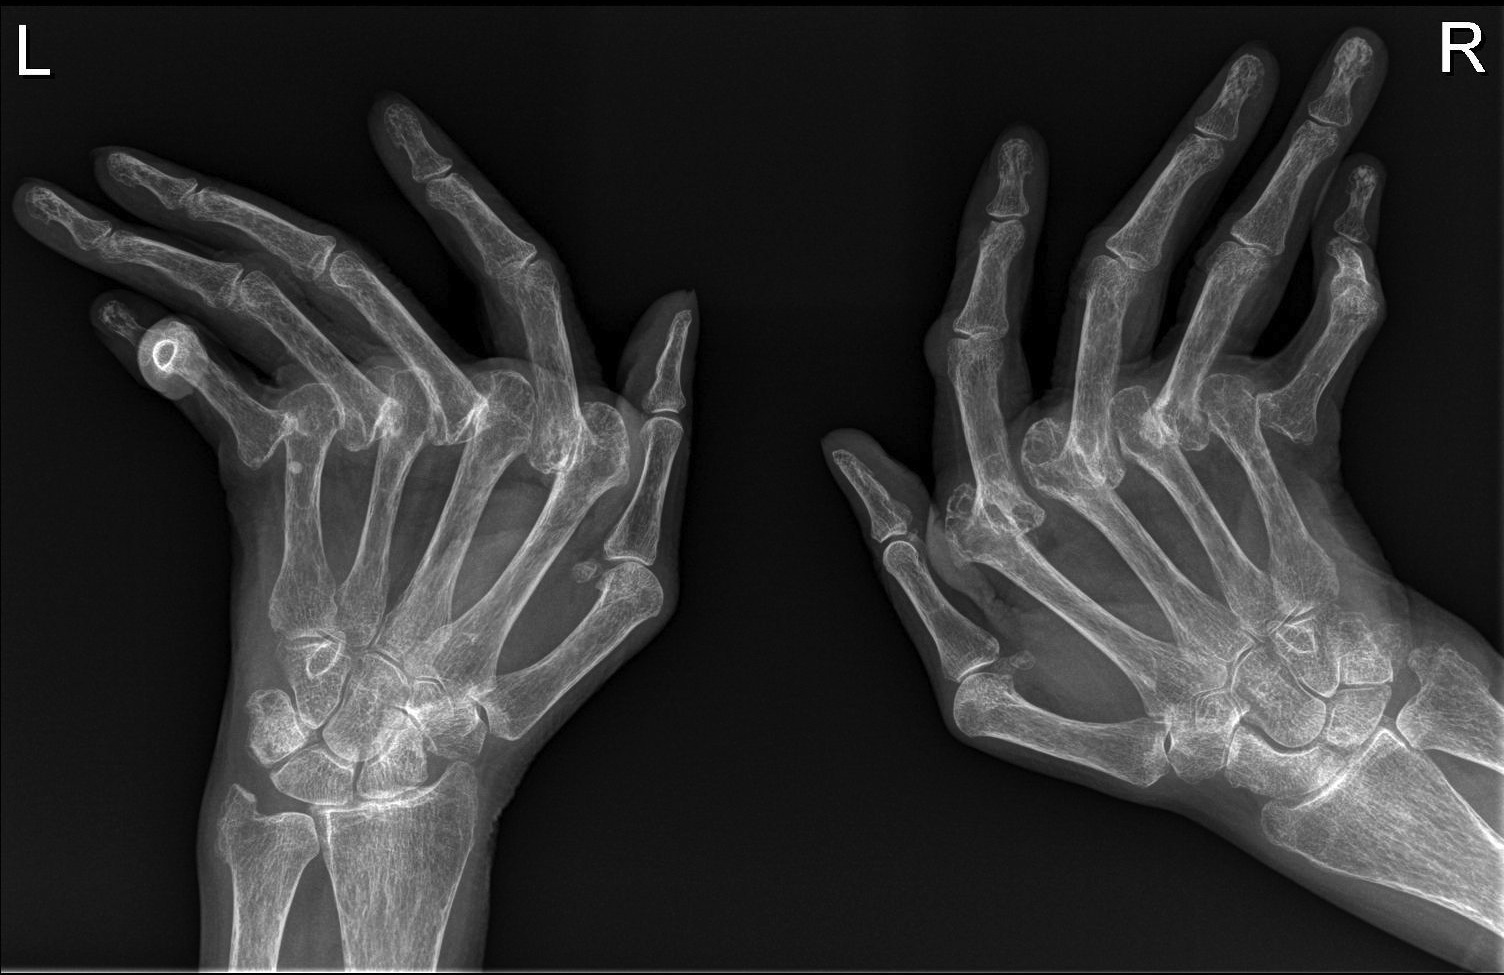 Rheumatoid arthritis - hands - Radiology at St. Vincent's ...